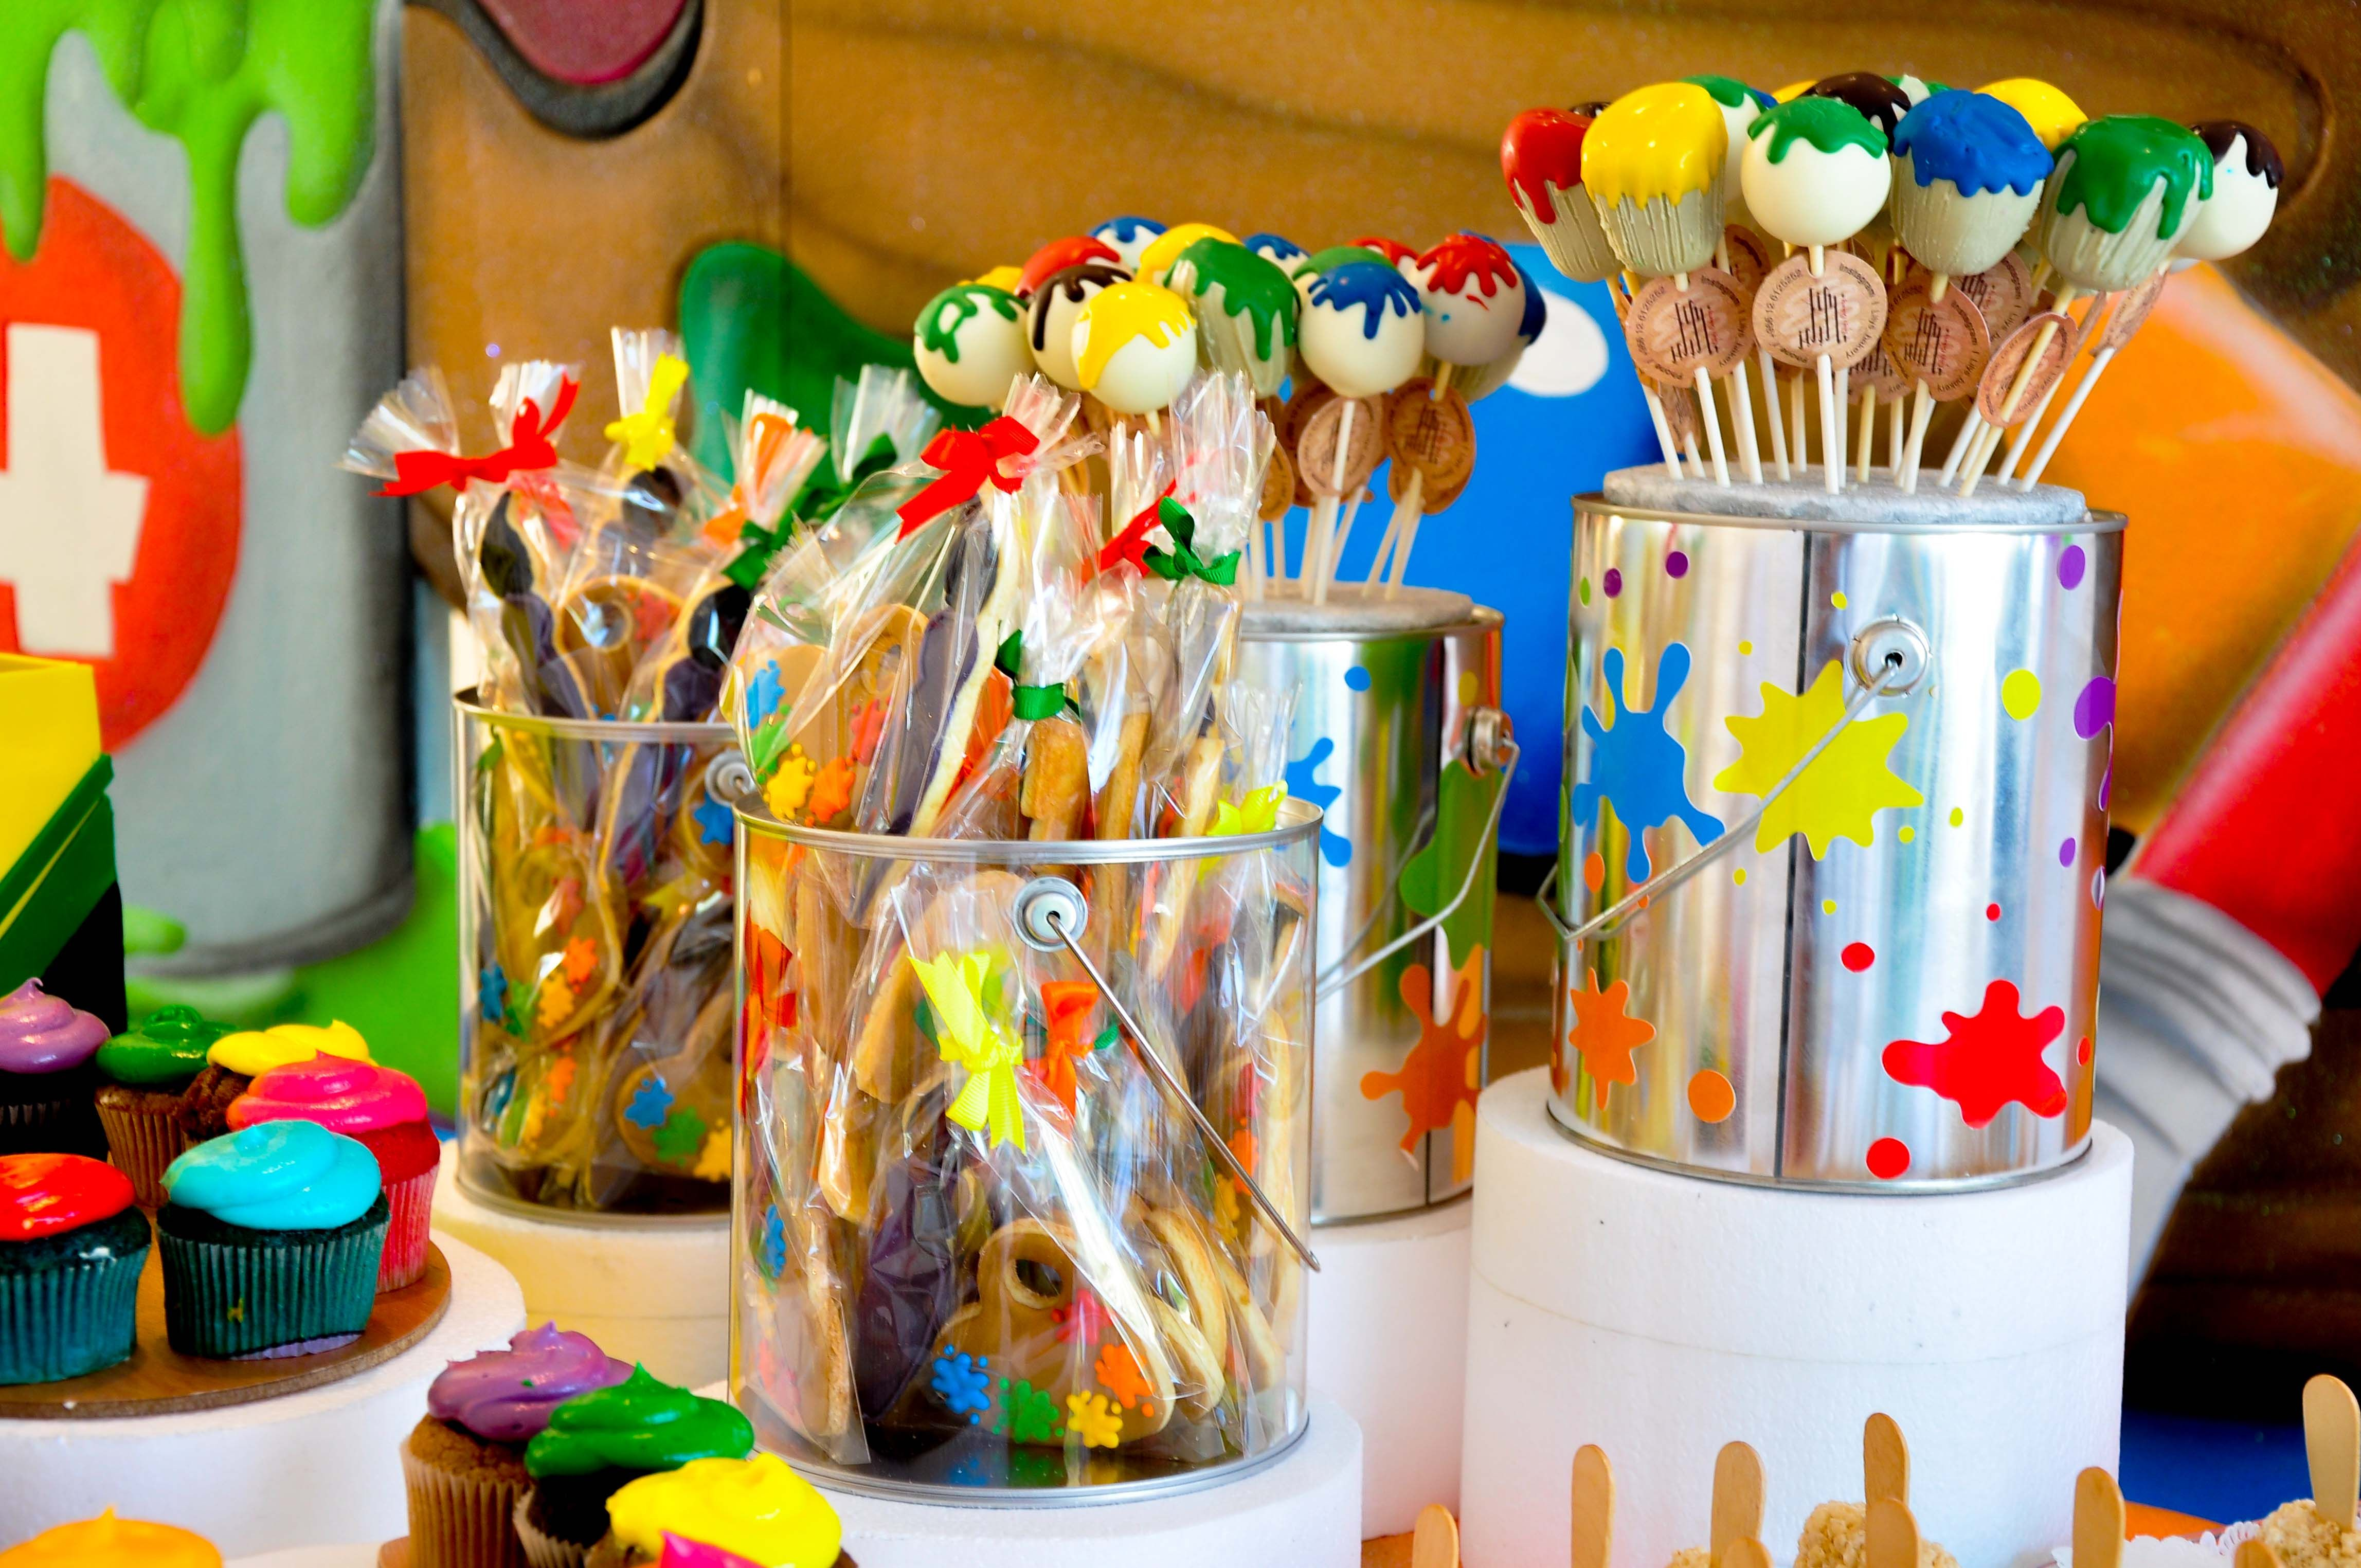 Amazing Artist Theme - Cake pops - by @Fantasyparty